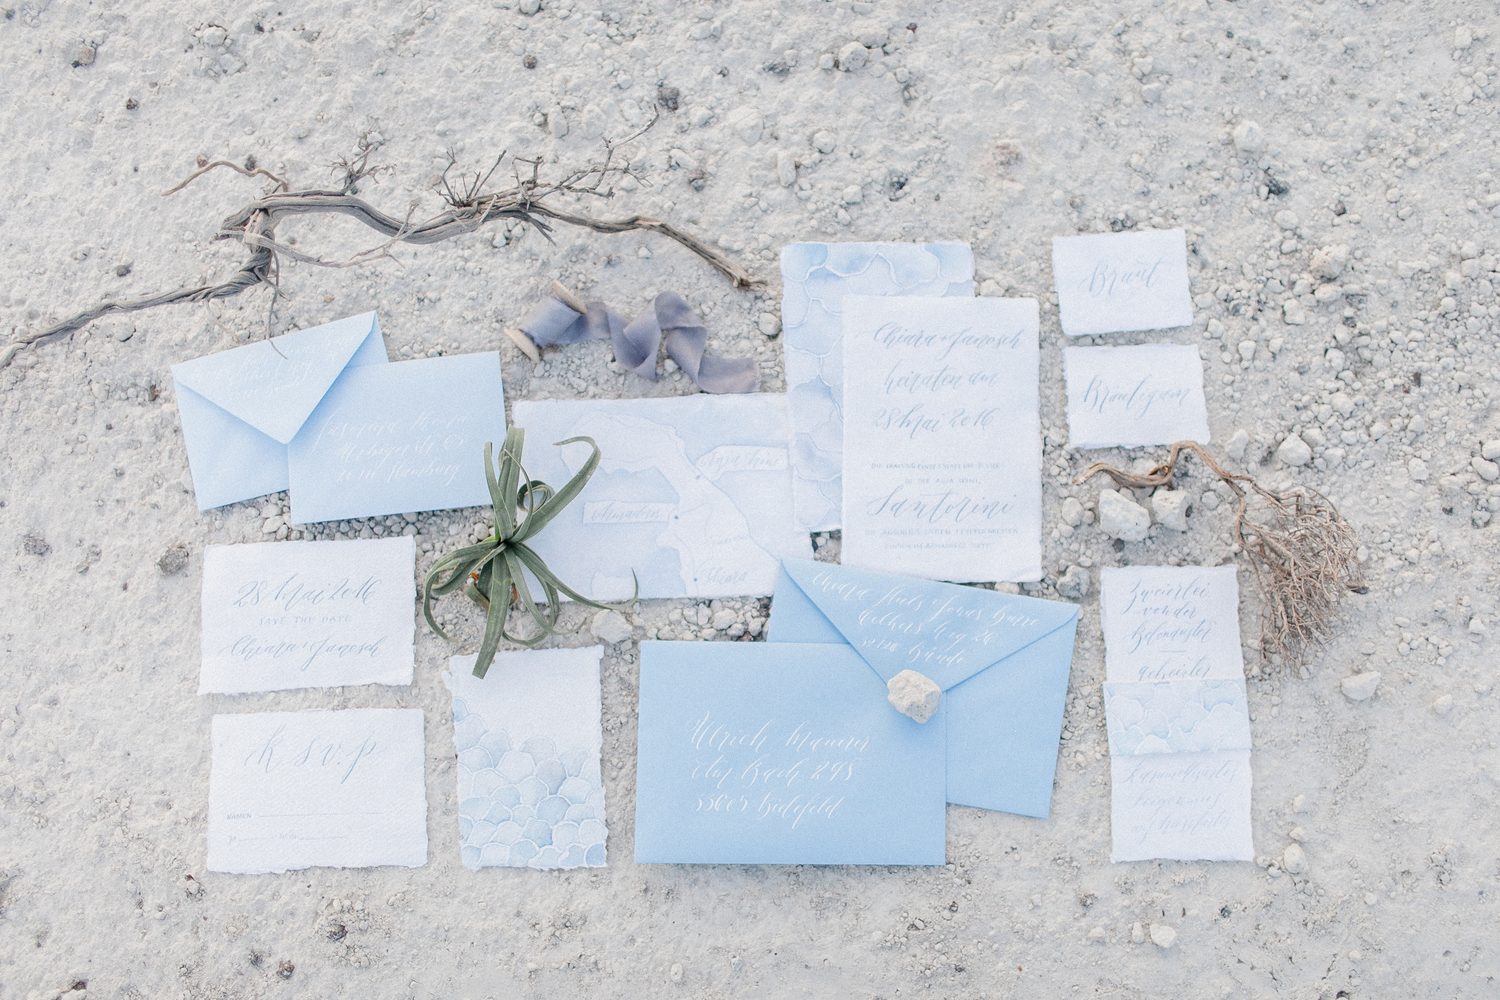 wedding stationery, wedding calligraphy, wedding invitations, blue wedding, beach wedding